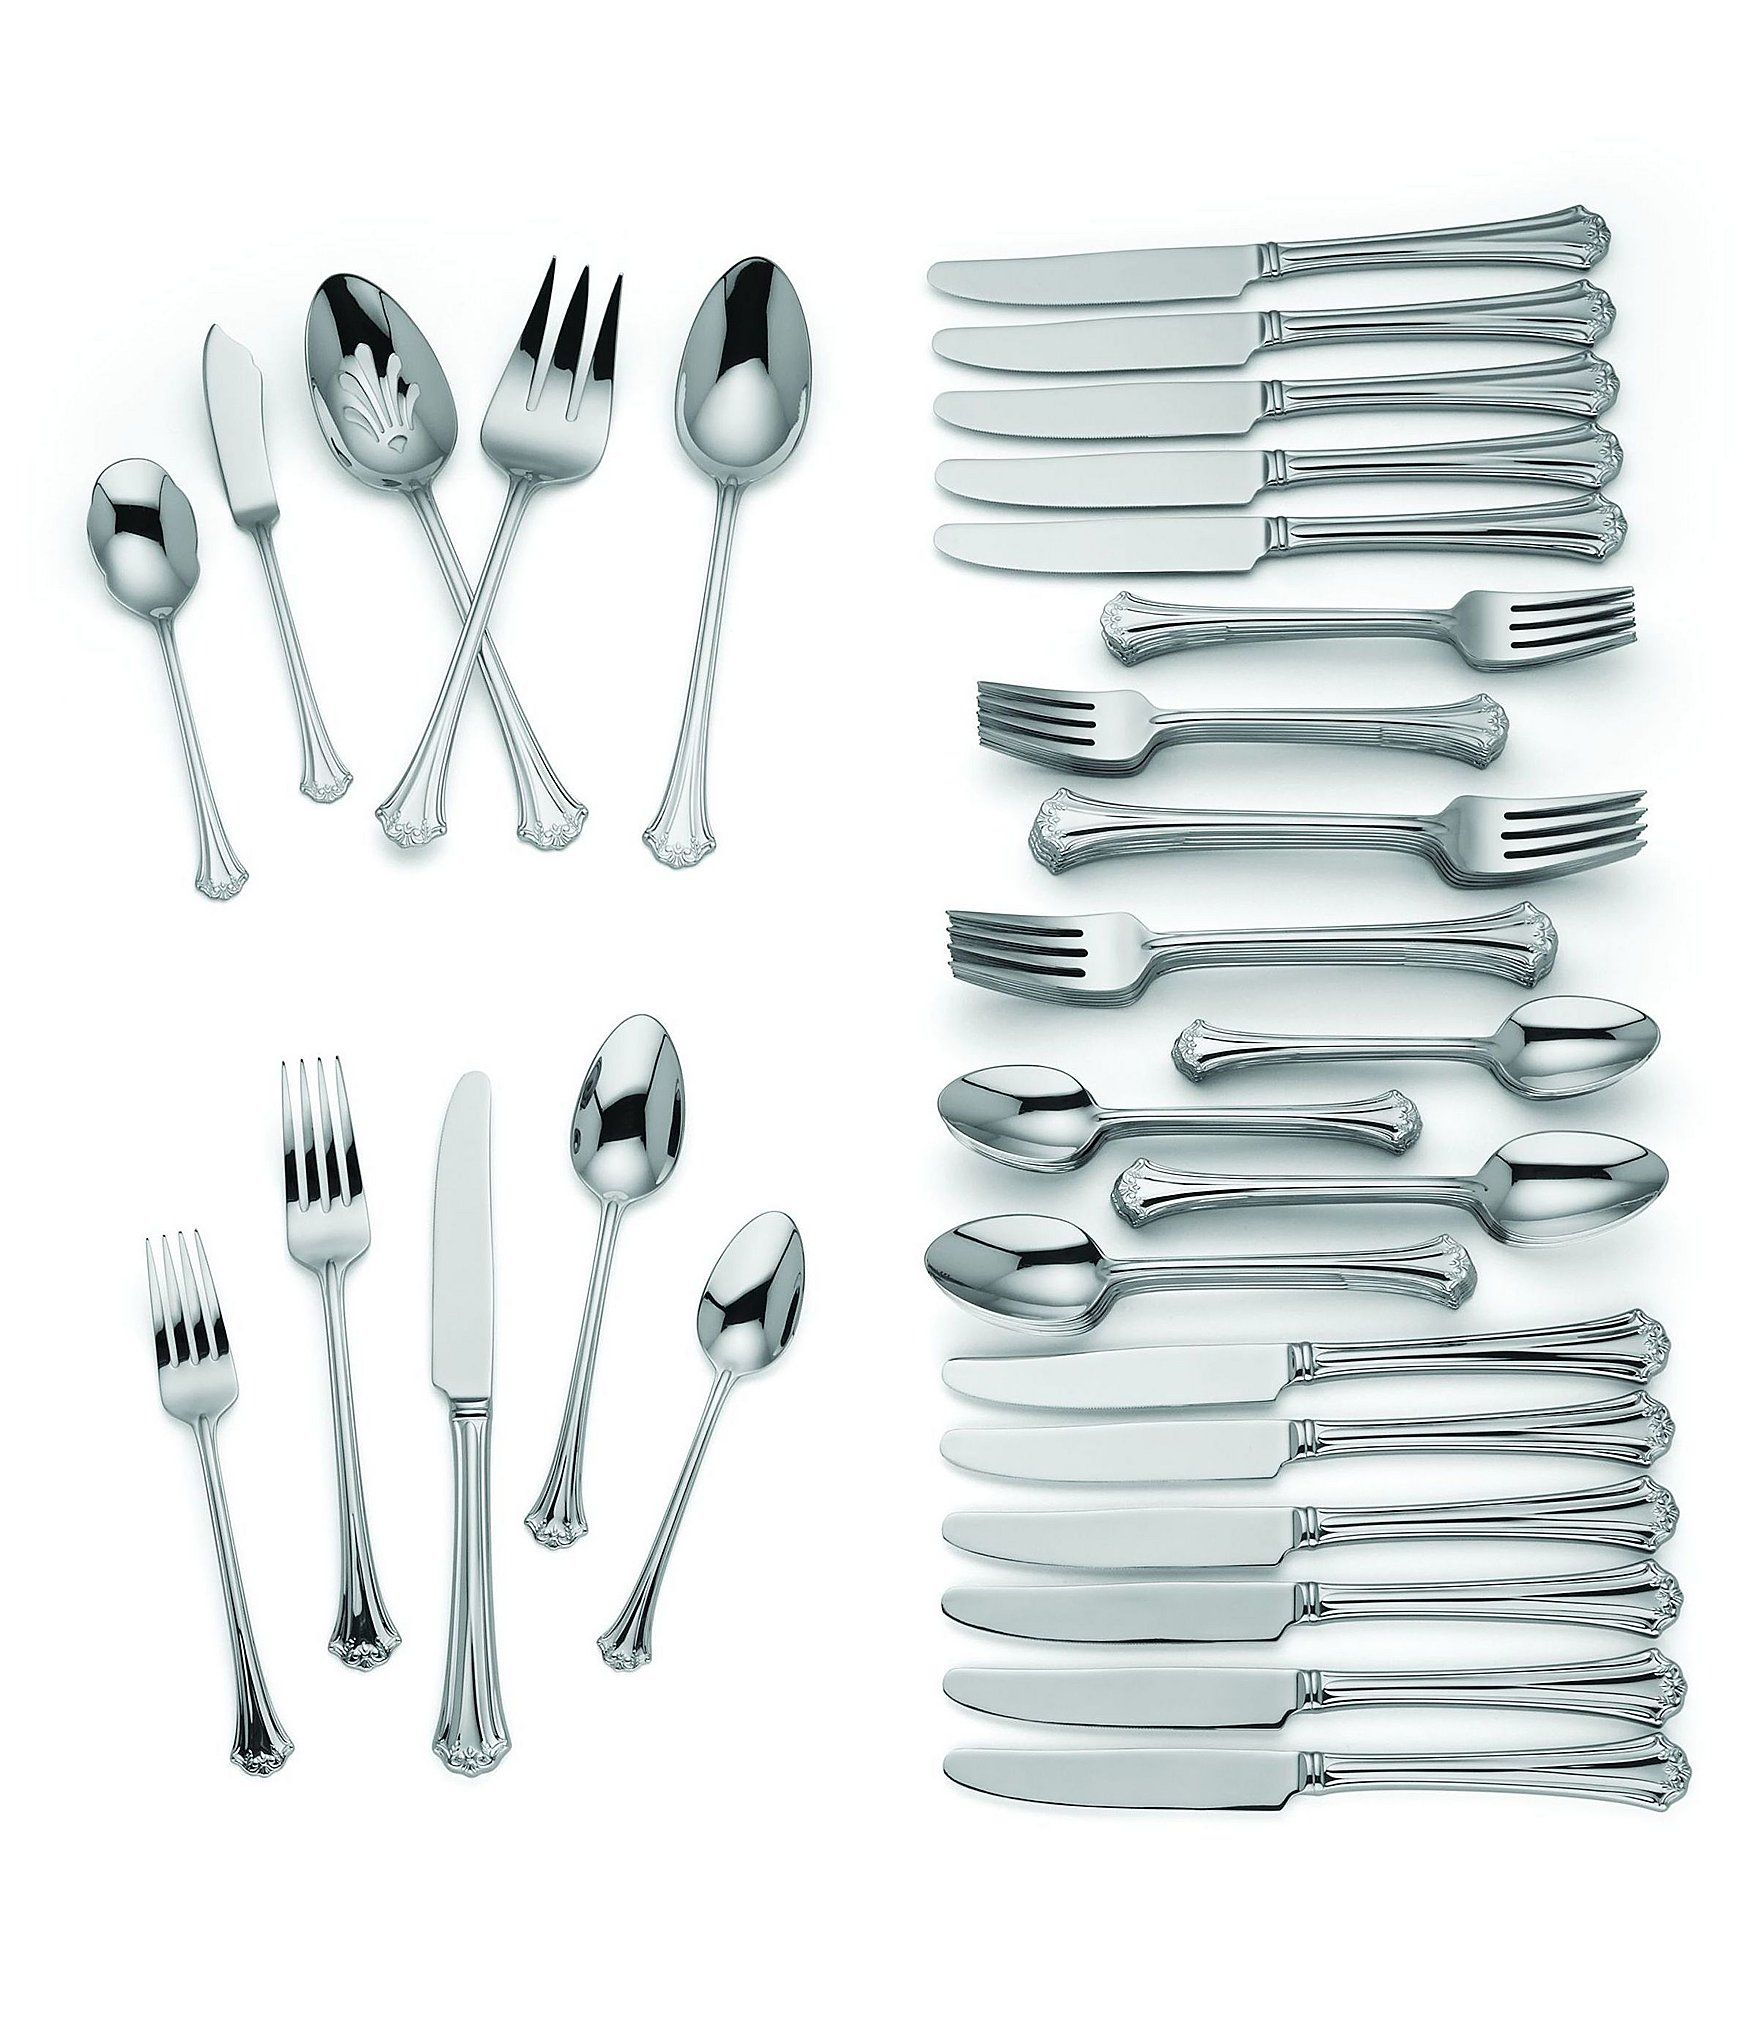 Reed Barton French Classic 65 Piece Stainless Steel Flatware Set Dillard S Stainless Steel Flatware Flatware Set Reed Barton